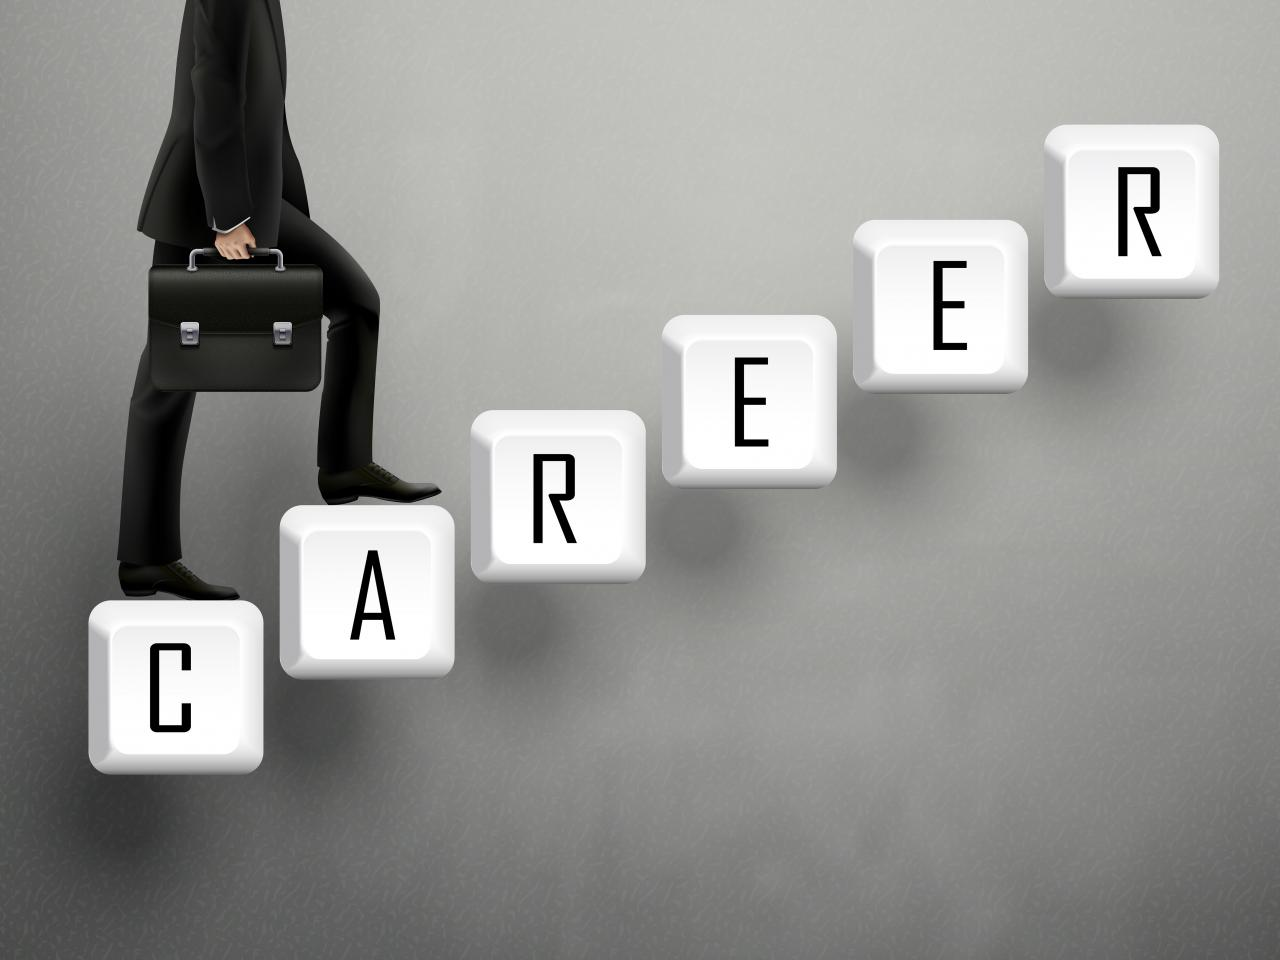 REVEALED: 9 Questions That Will Help You Find Your Dream Career